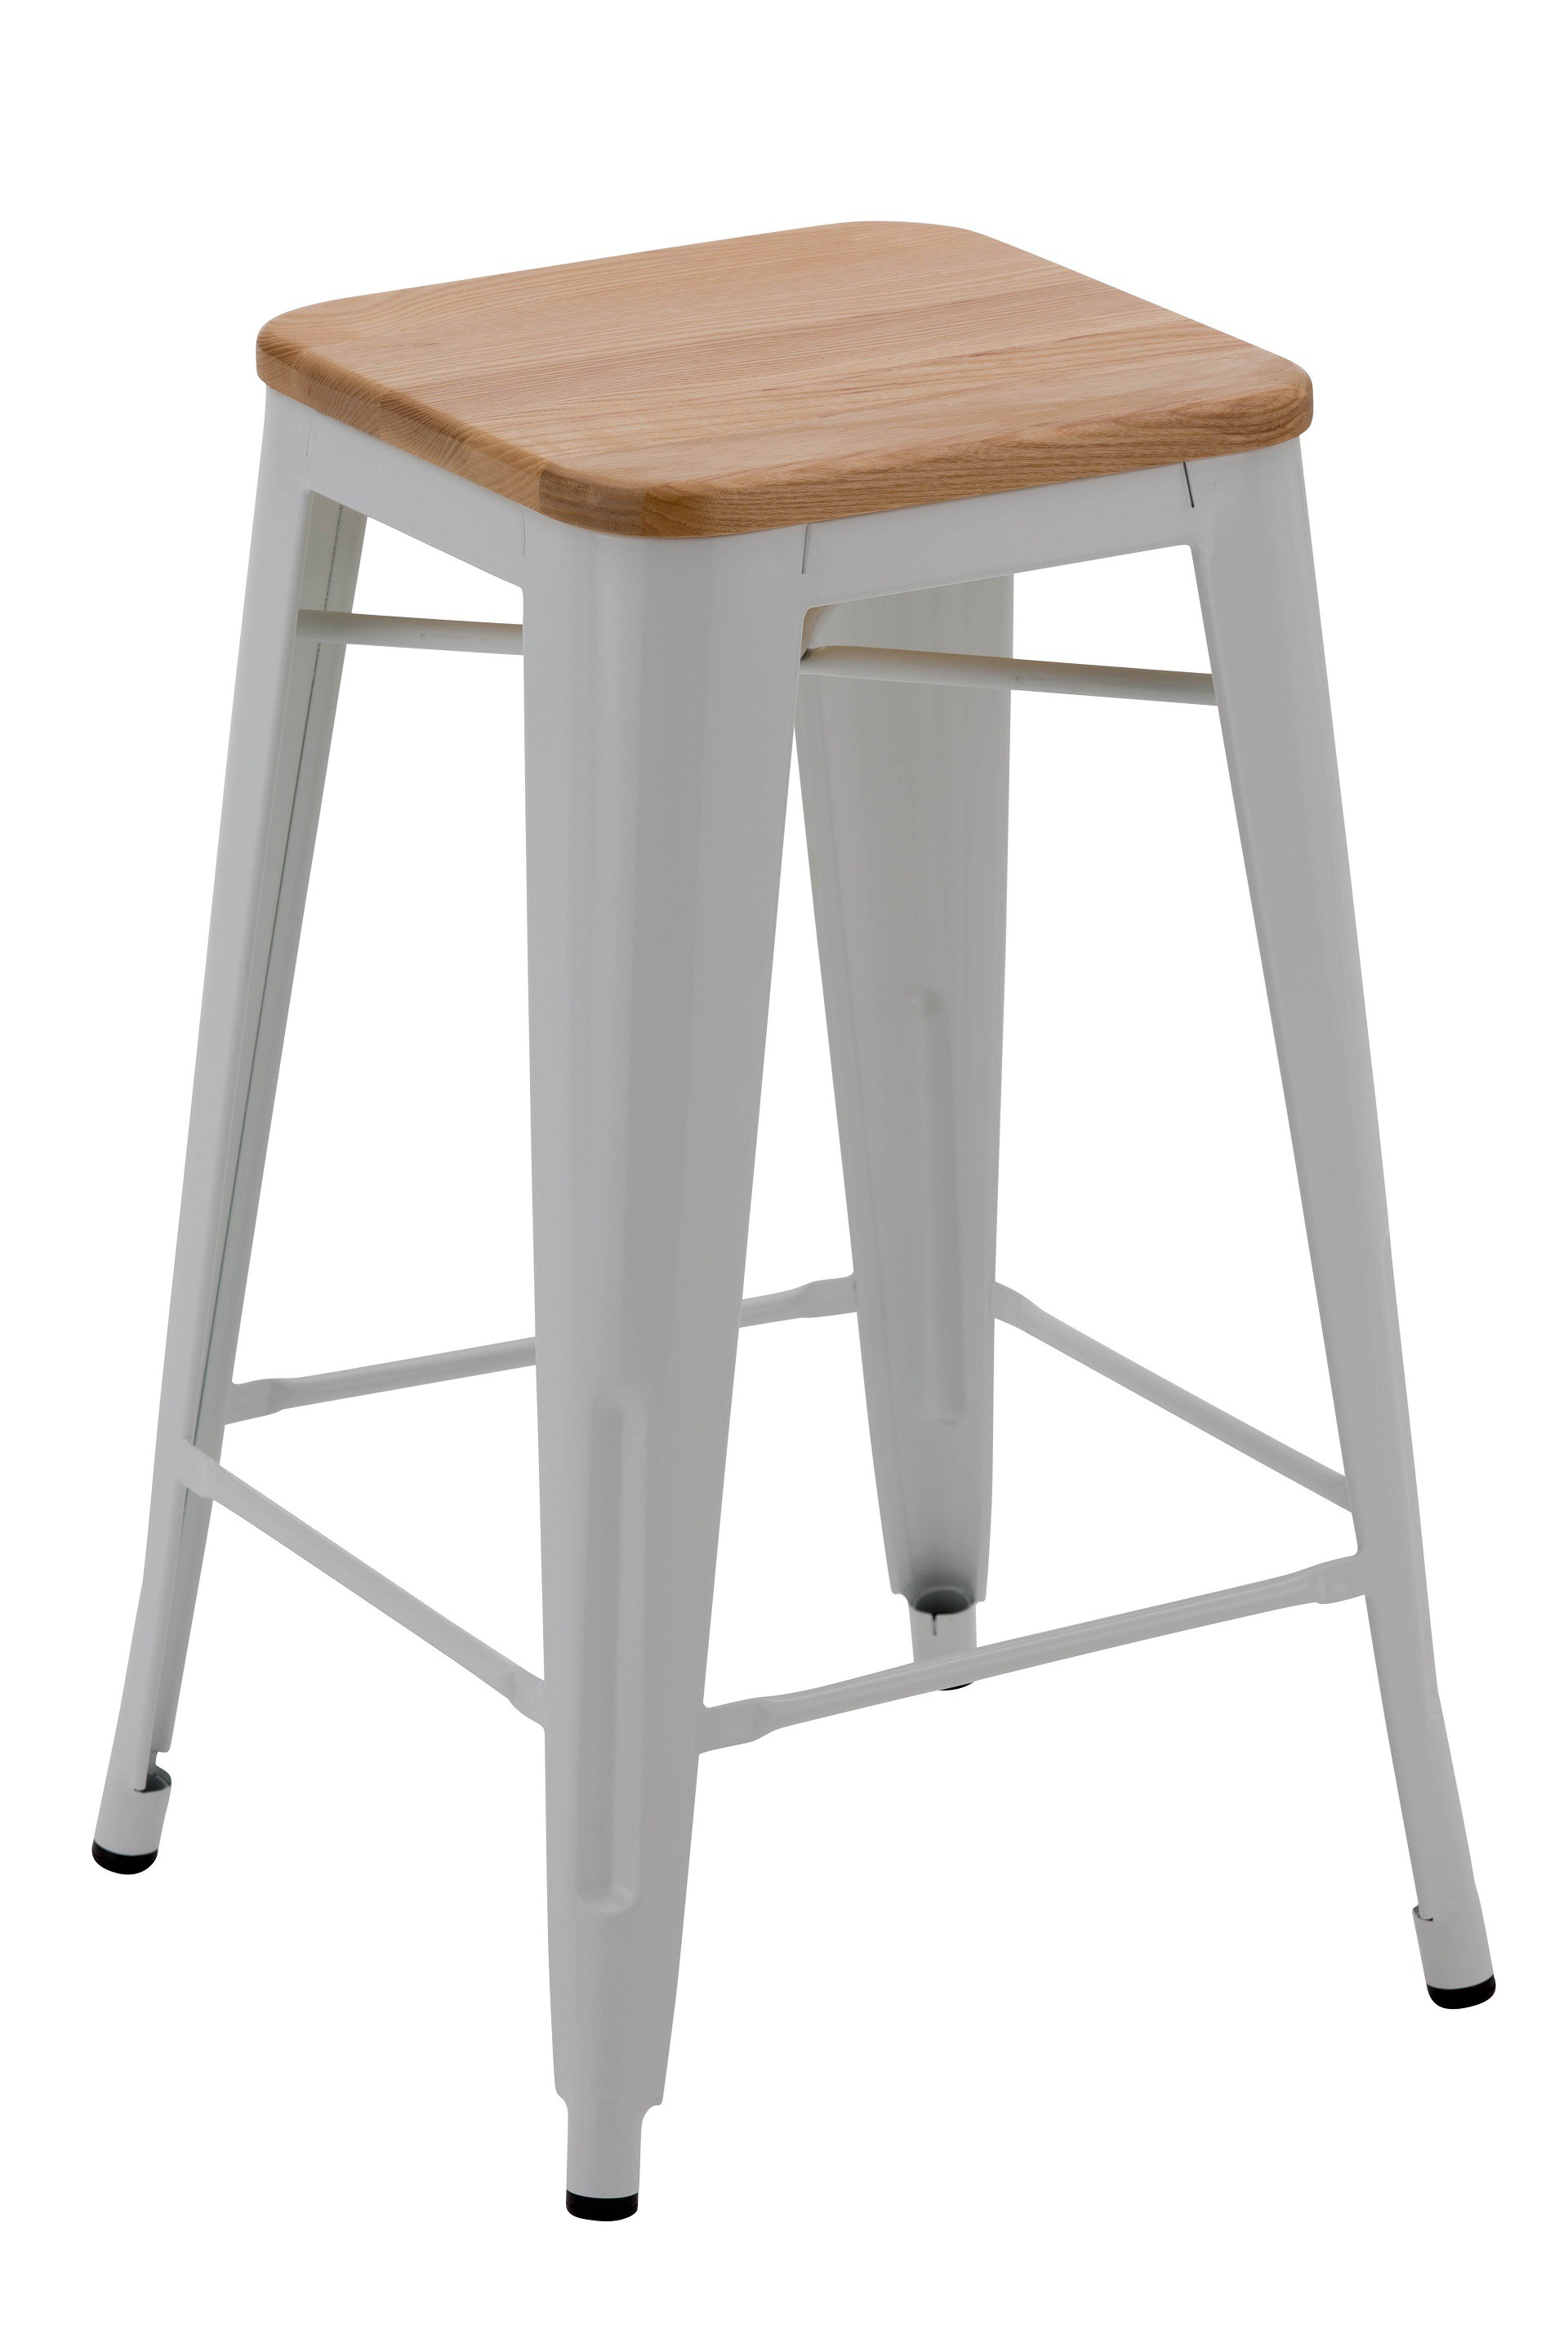 Best Of Patio Furniture Bar Stools